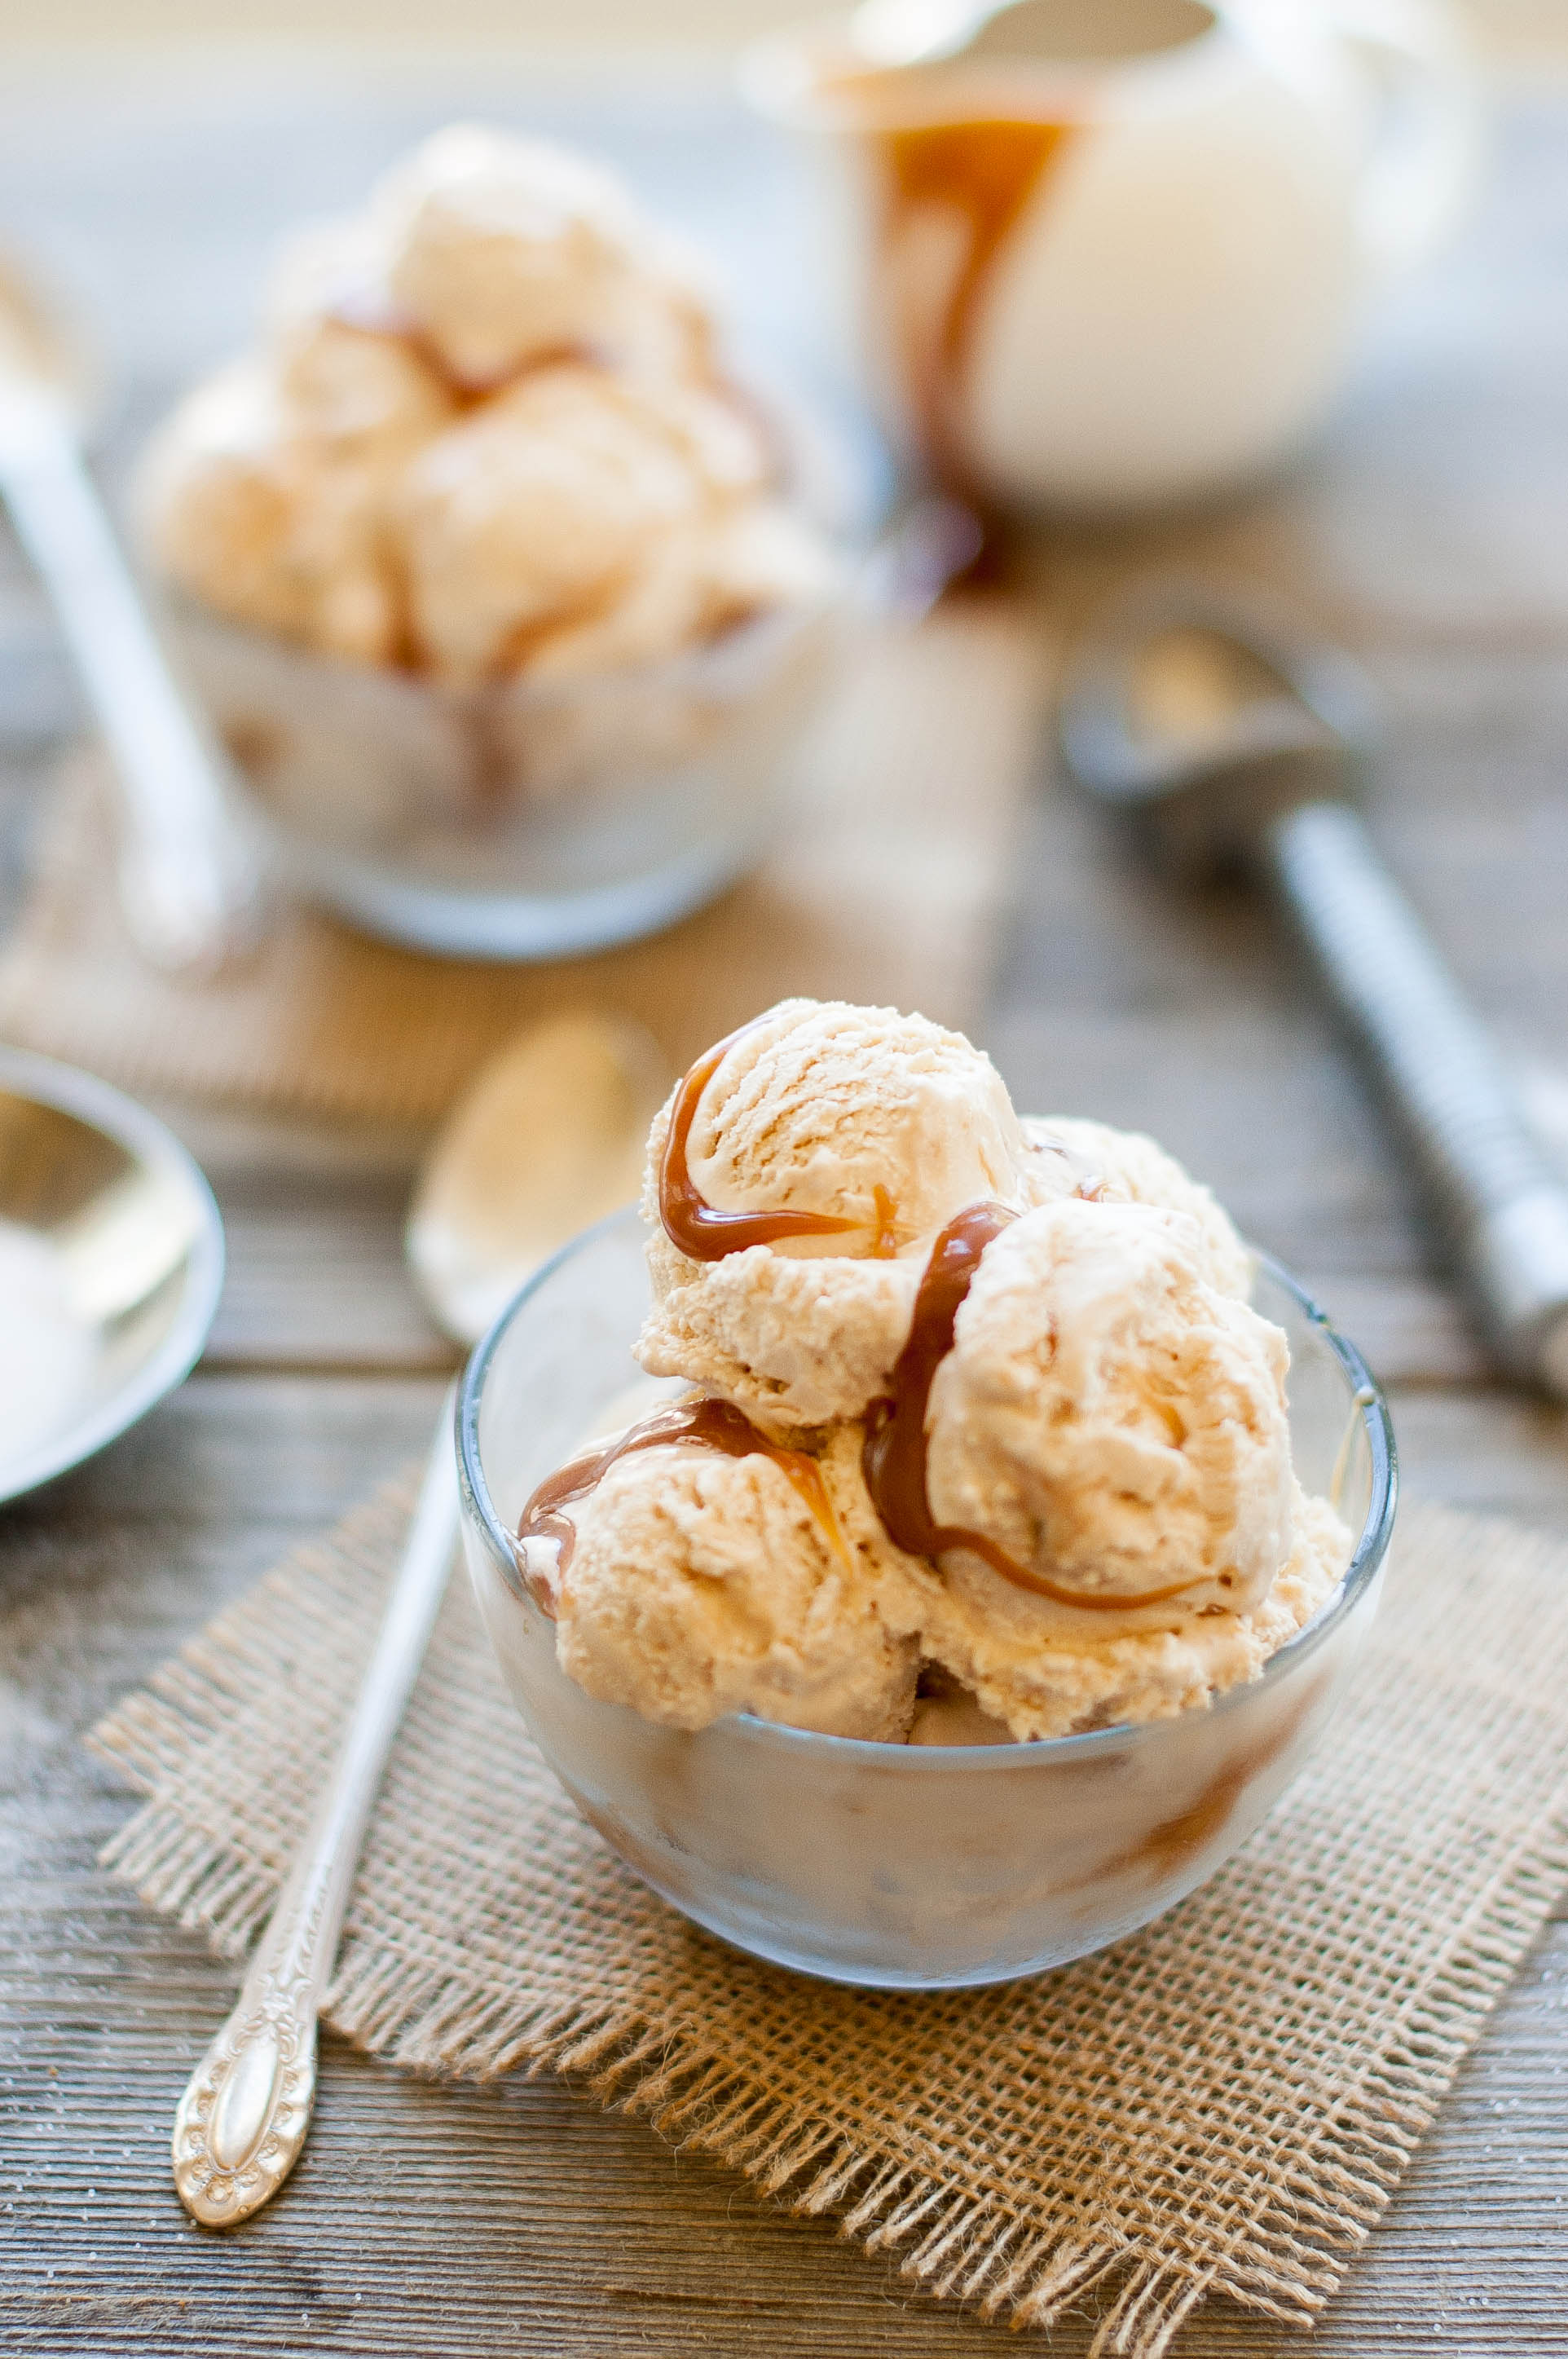 Homemade Salted Caramel Ice Cream - The Kitchen McCabe